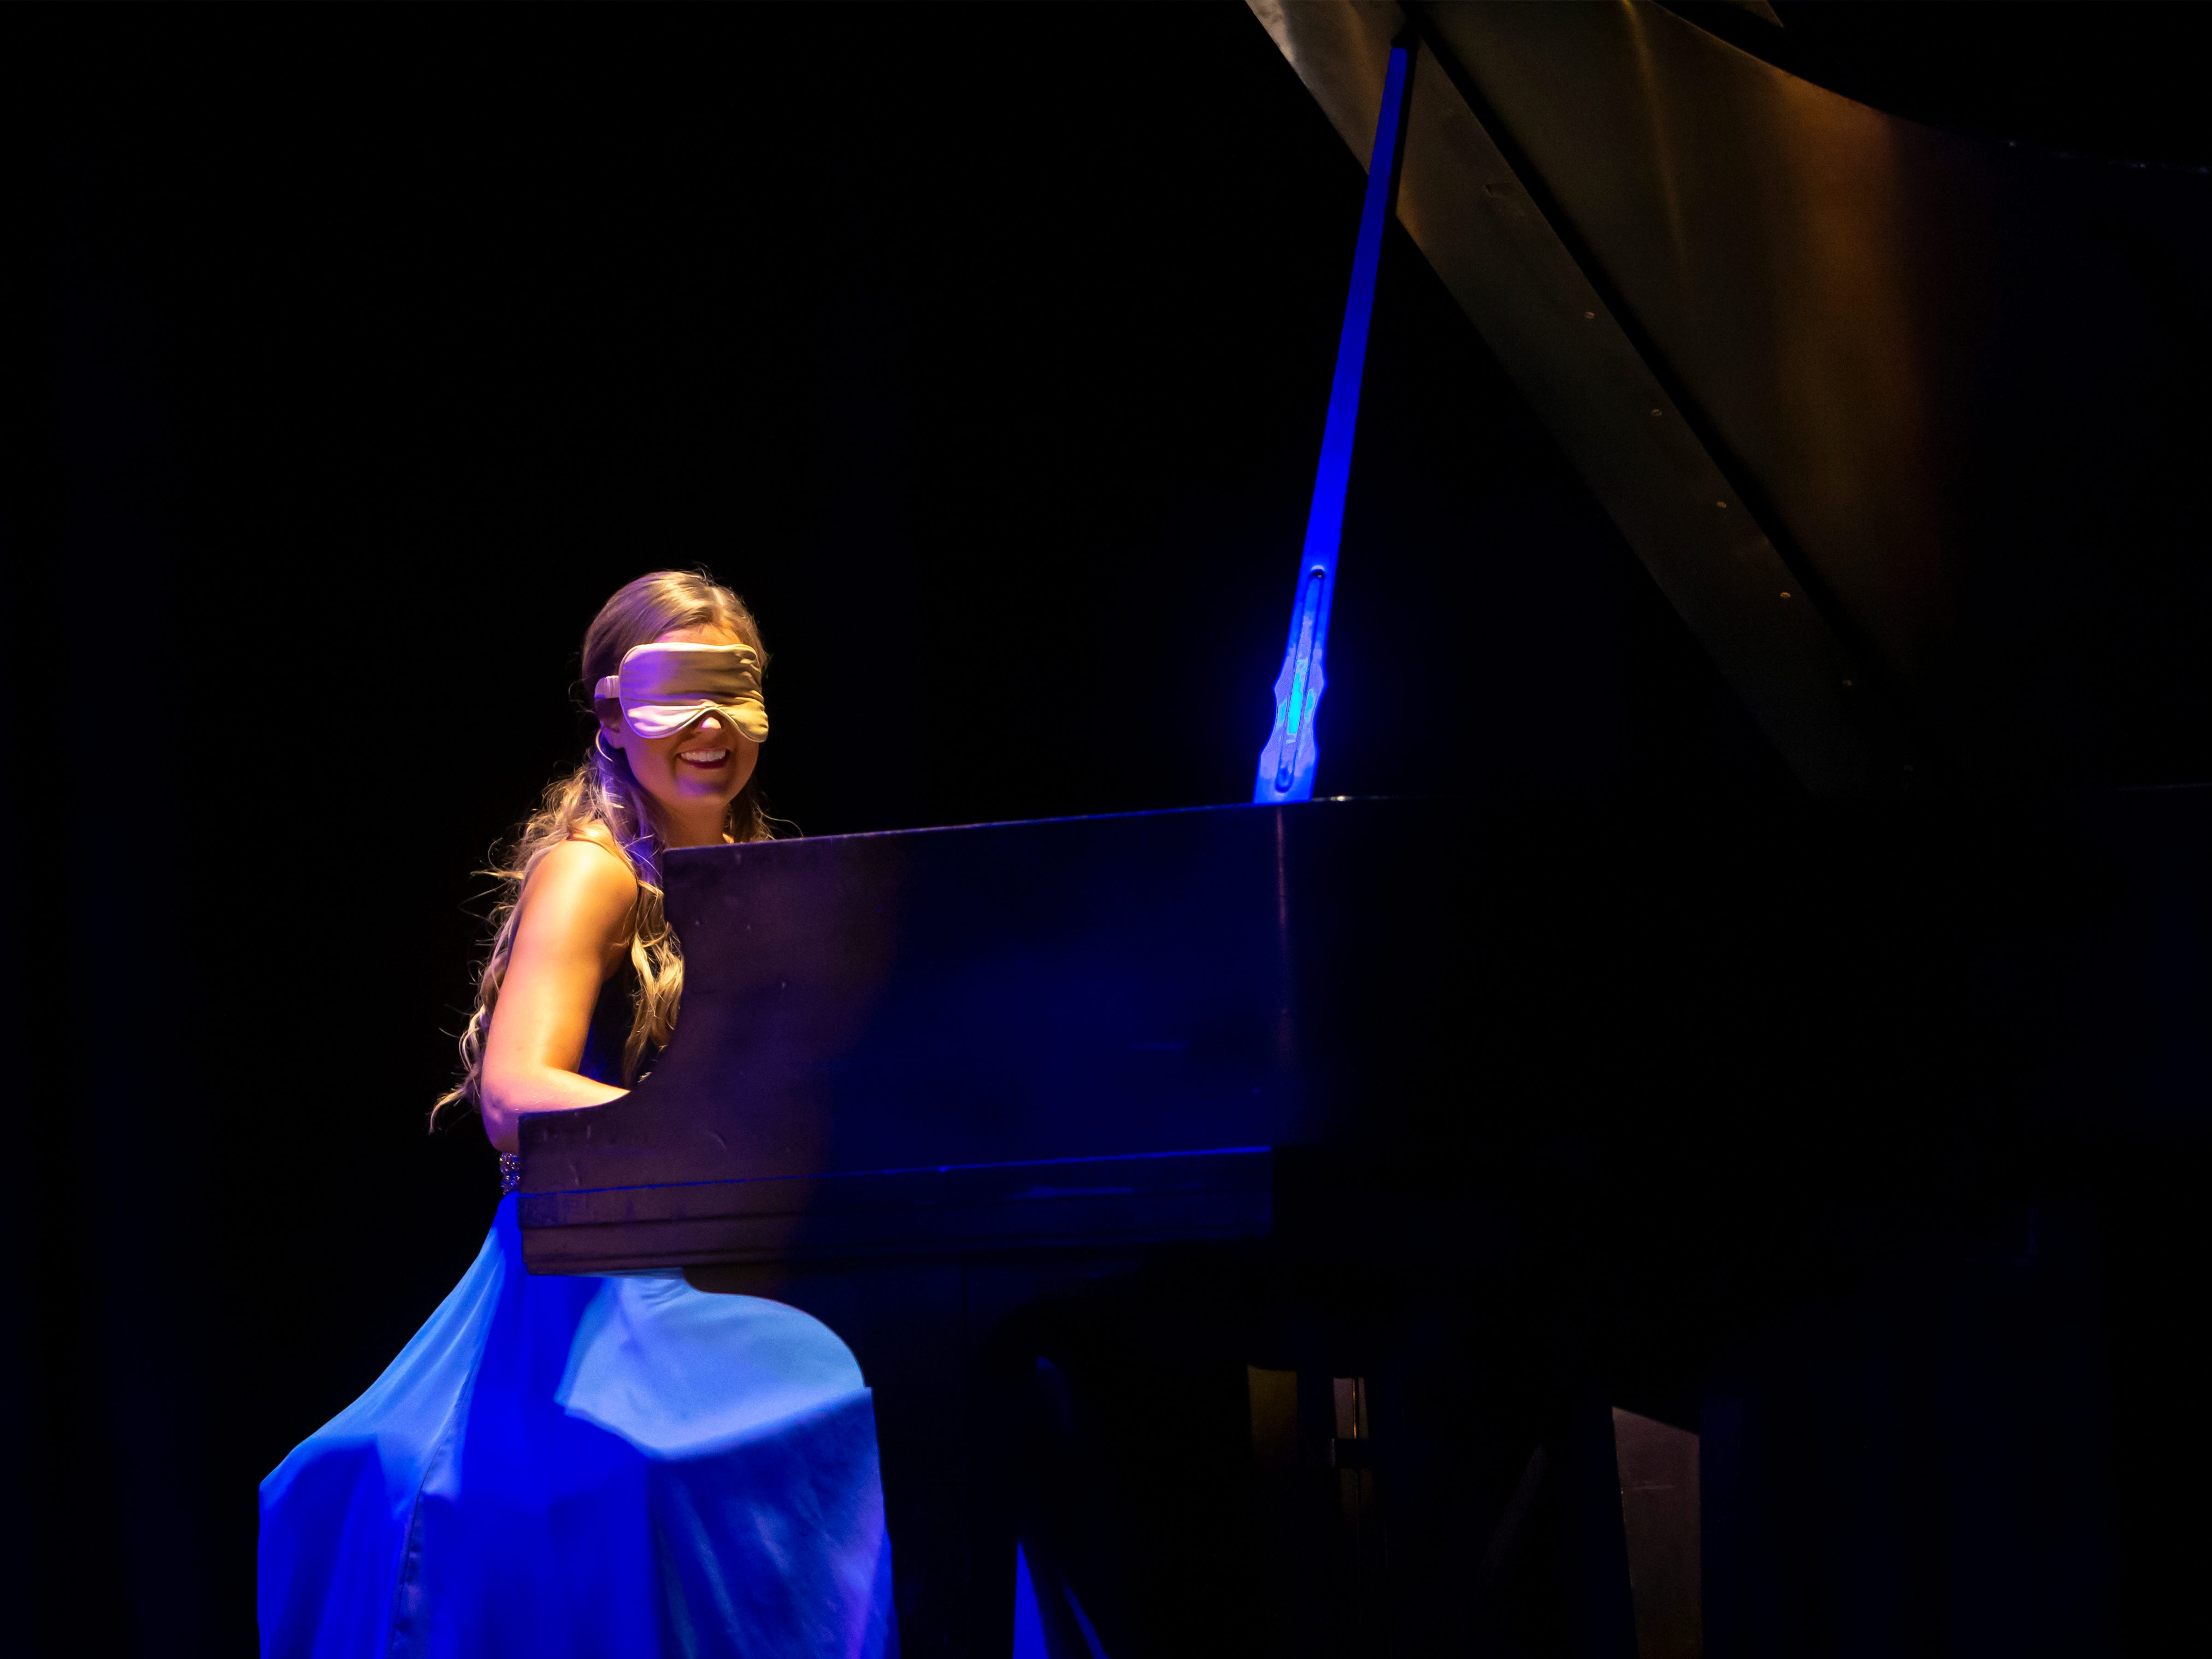 Hannah Krueger performs a piano piece blindfolded during the Miss Oshkosh Scholarship Pageant Saturday, March 2, 2019, at Alberta Kimball Auditorium in Oshkosh, Wis.